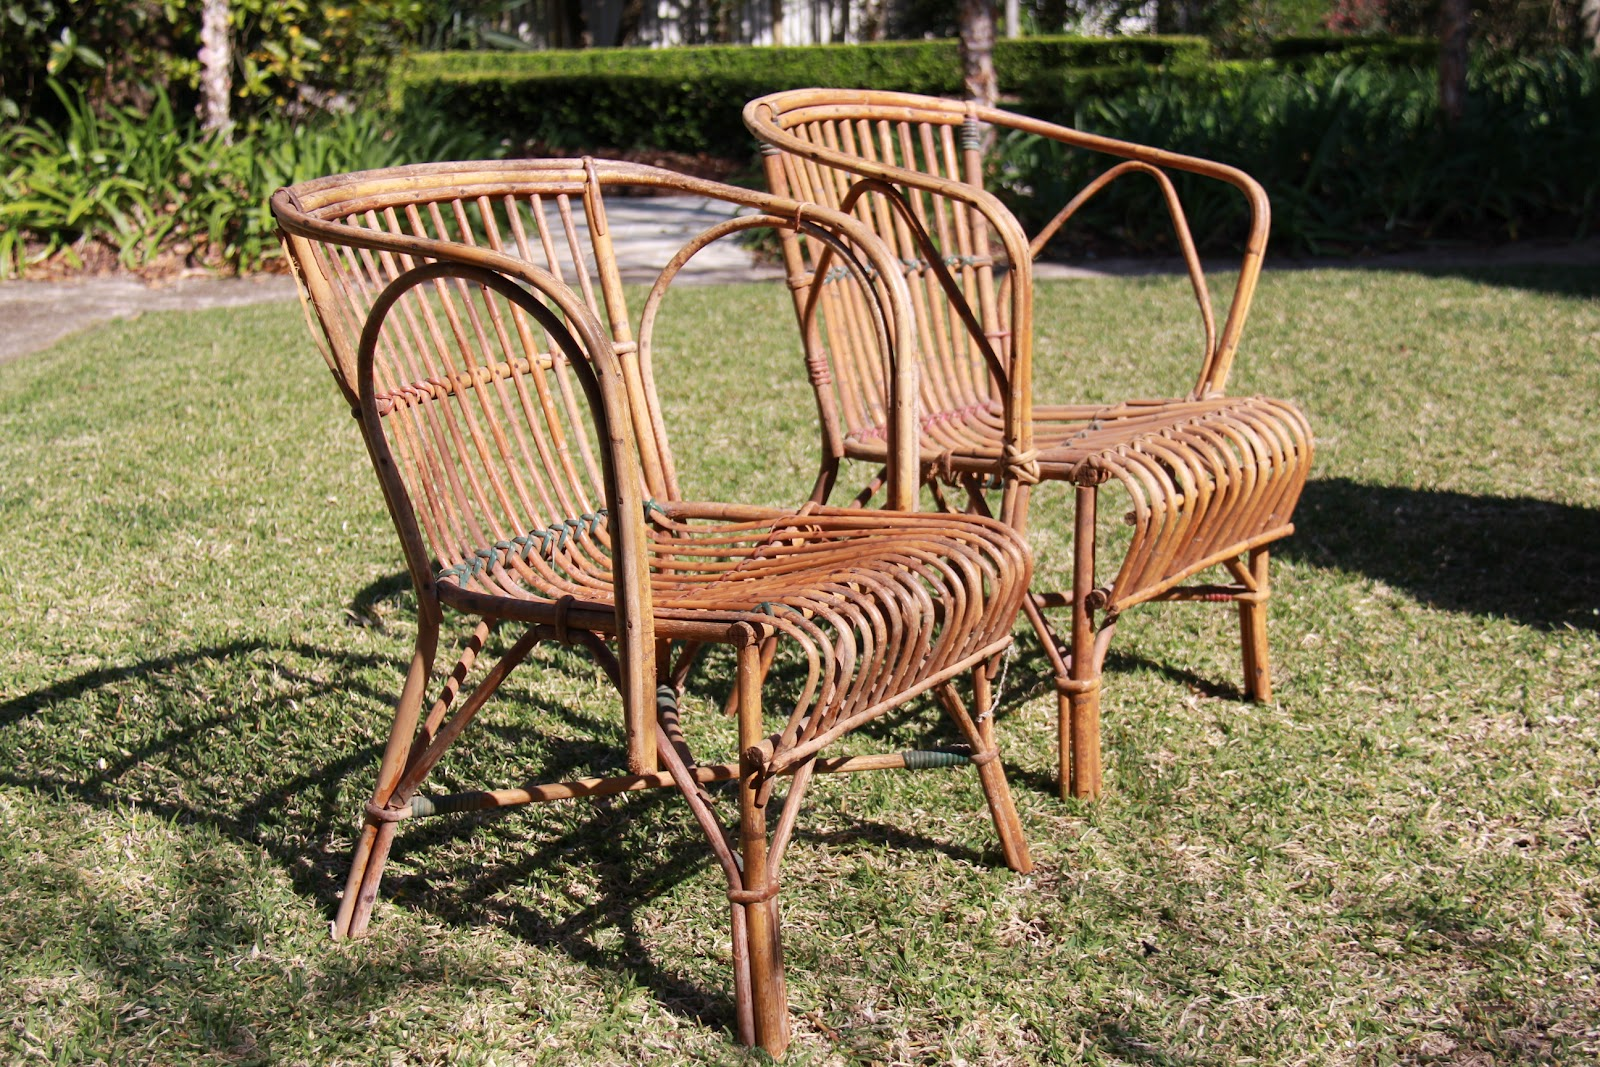 Antique Cane Chairs Hanging Chair Za Vintage Finds Verandah Seagrass Or Split